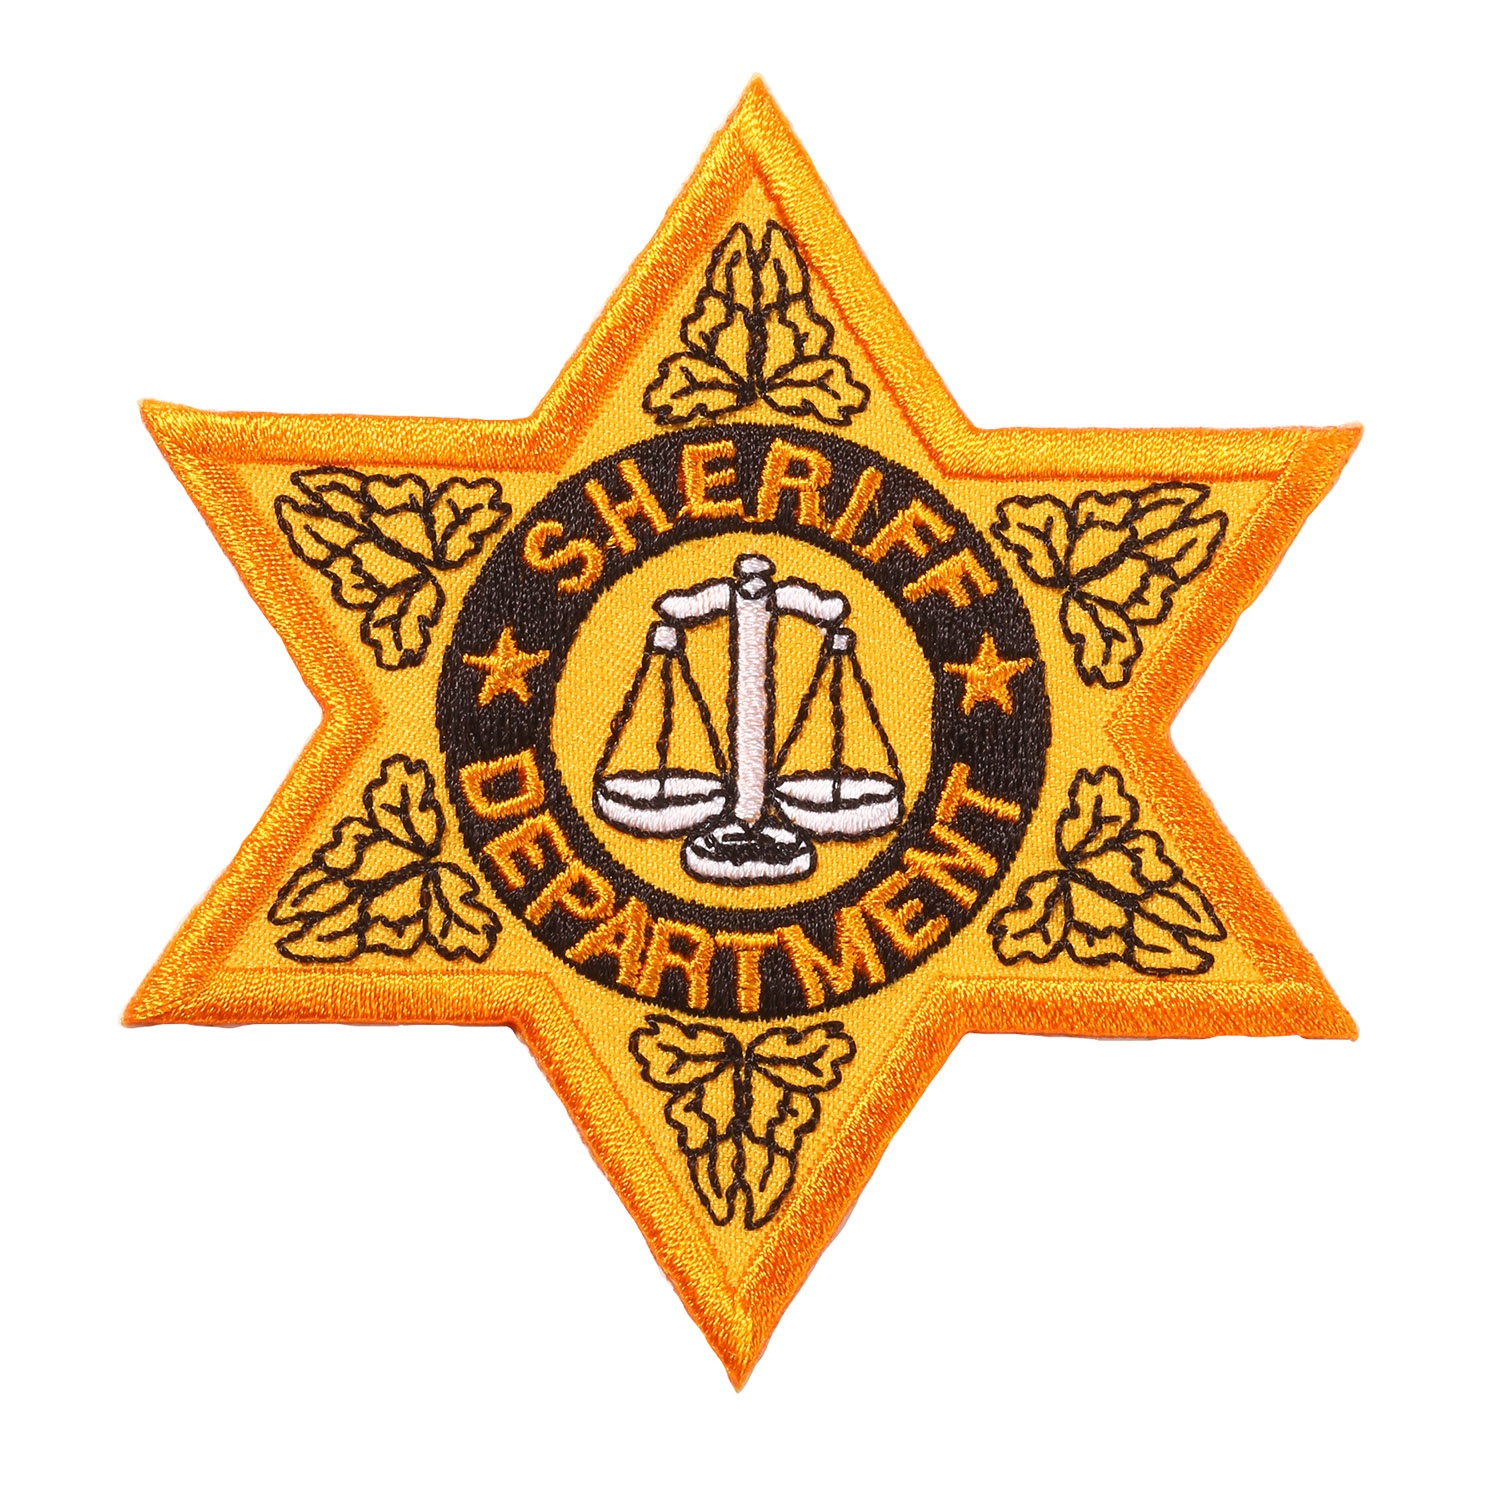 Penn Emblem Sheriff Badge Emblem (Standard Finish)